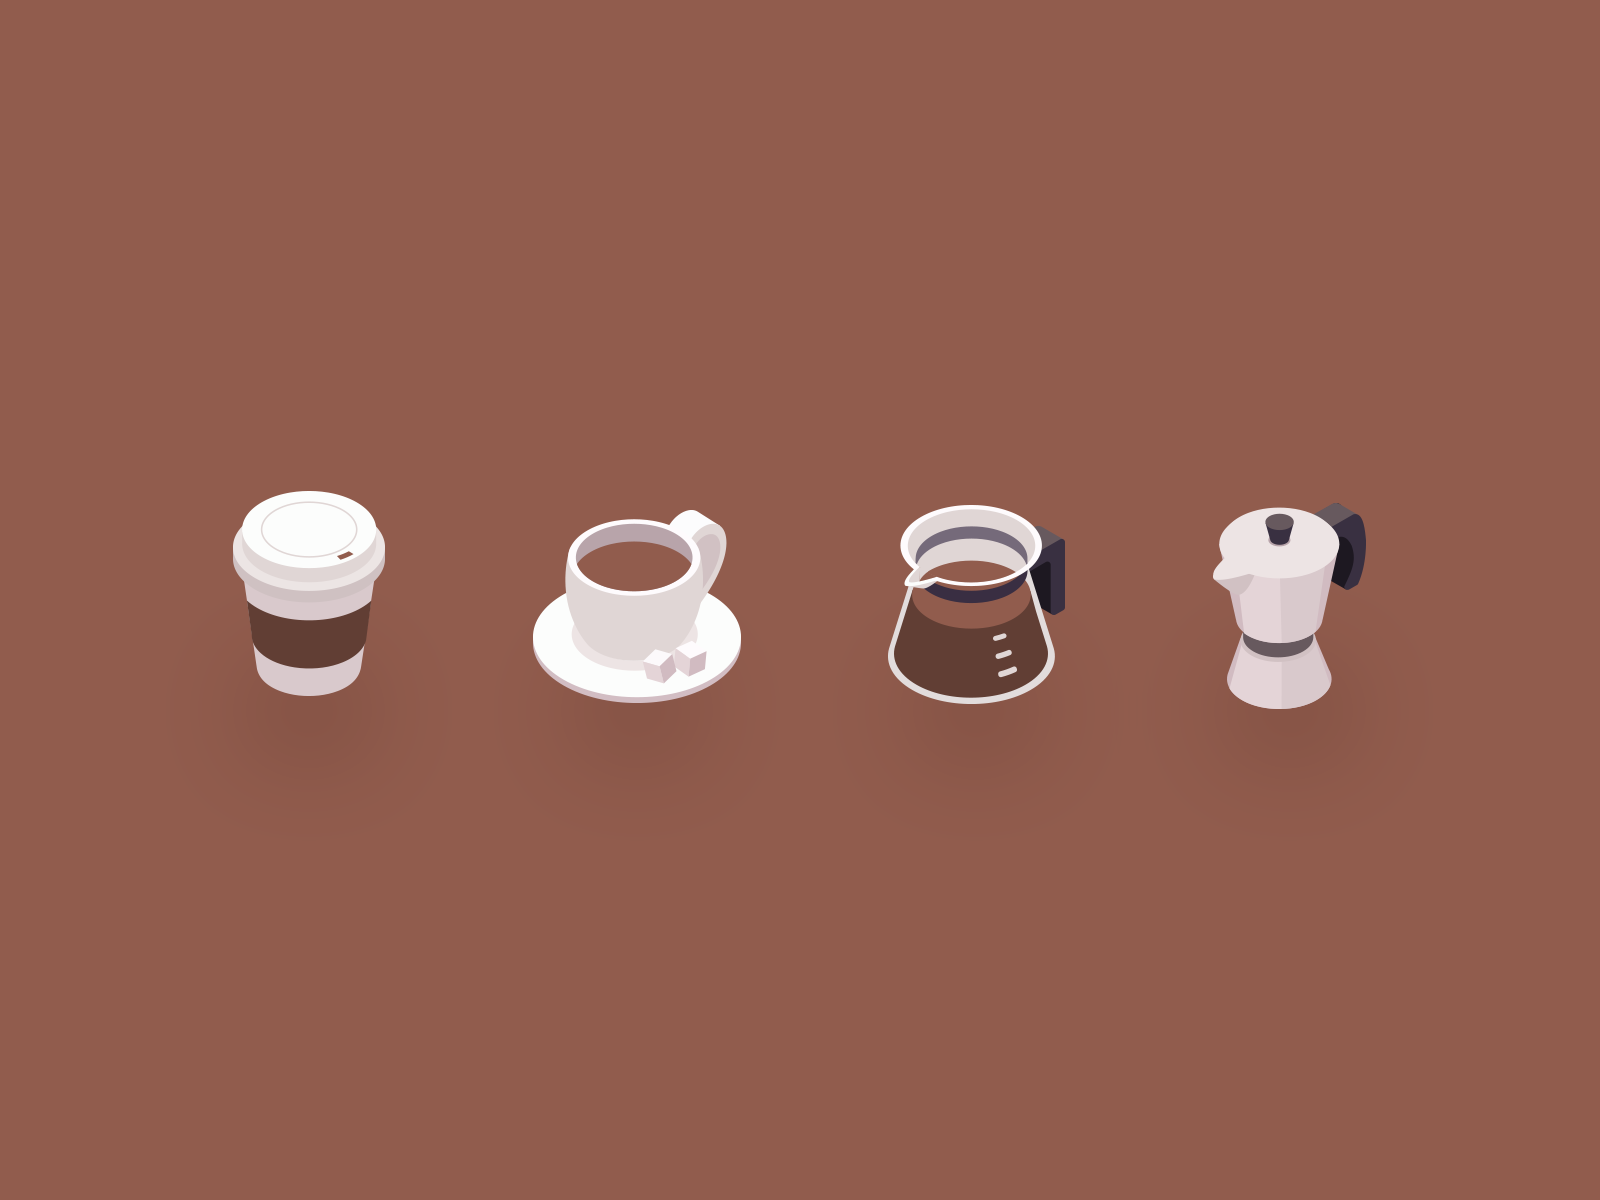 Coffee isometric icons by CDwalker on Dribbble